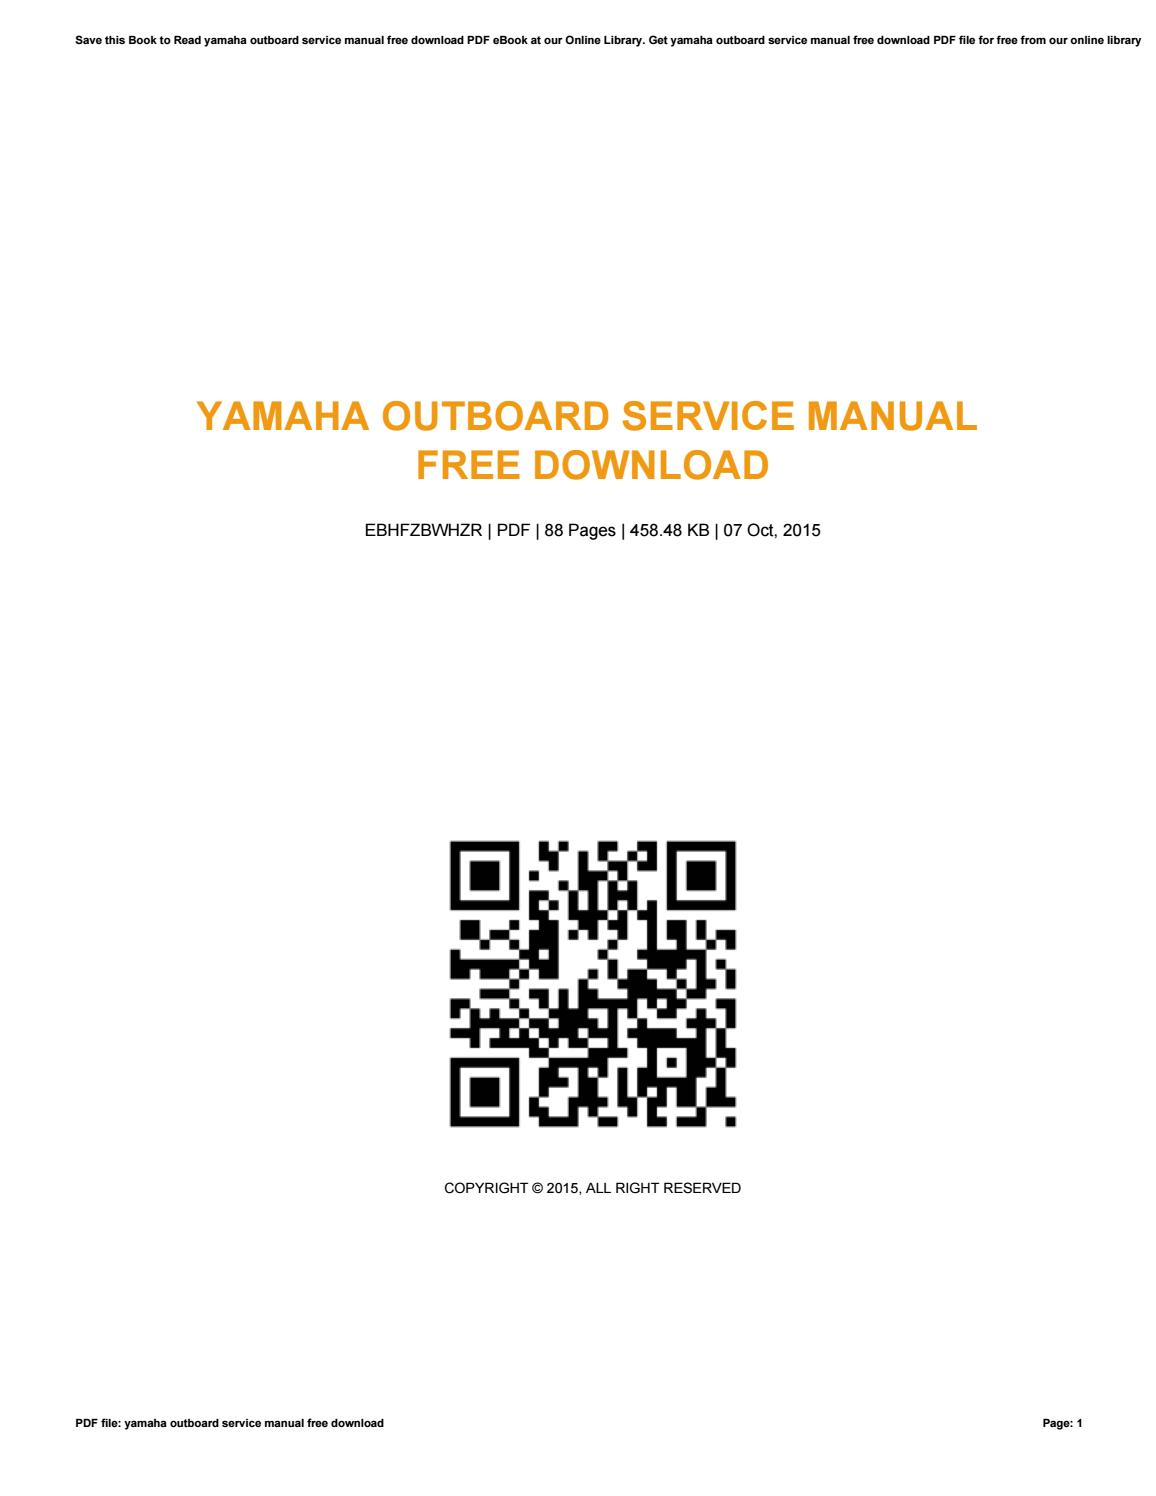 Yamaha Outboard Service Manual Pdf Download Free